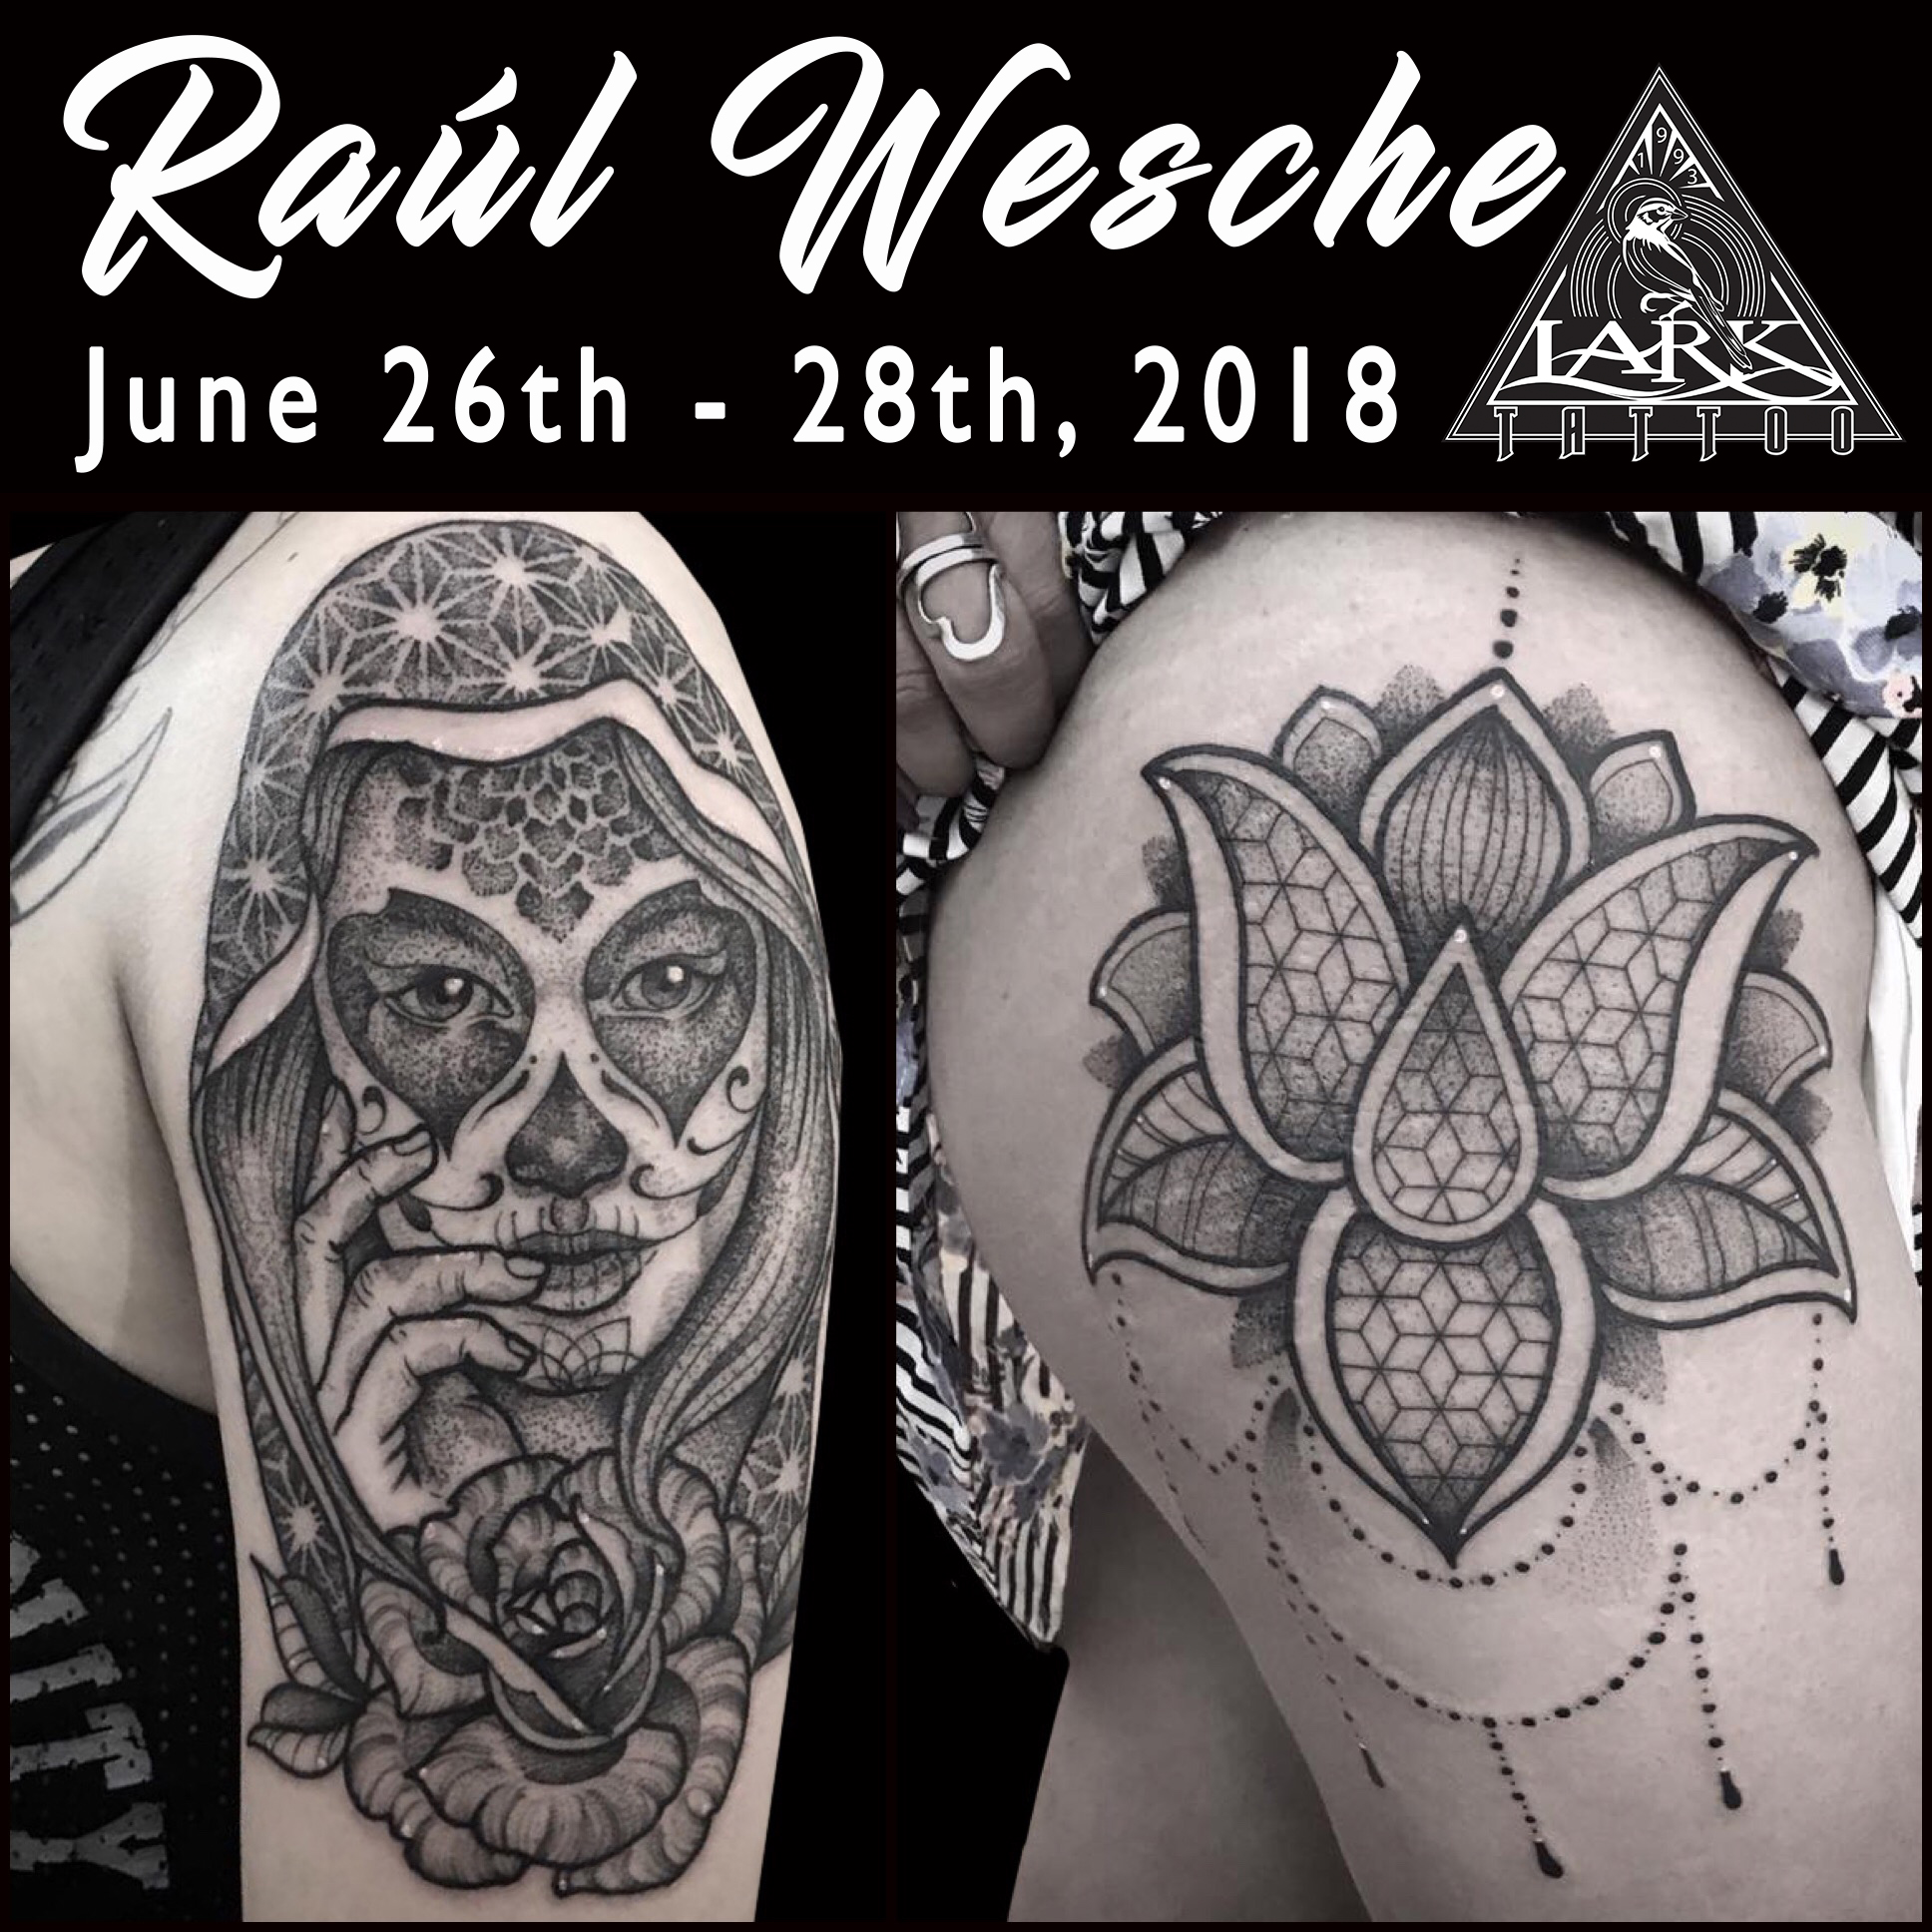 #stipple #stippletattoo #geometric #geometrictattoo #dotwork #dotworktattoo #bookplate #bookplatetattoo #blackandgreytattoo  #blackandgraytattoo #tattoo #tattoos #tat #tats #tatts #tatted #tattedup #tattoist #tattooed #inked #inkedup #ink #tattoooftheday #amazingink #bodyart #tattooig #tattoosofinstagram #instatats  #larktattoo #larktattoos #larktattoowestbury #westbury #longisland #NY #NewYork #usa #art